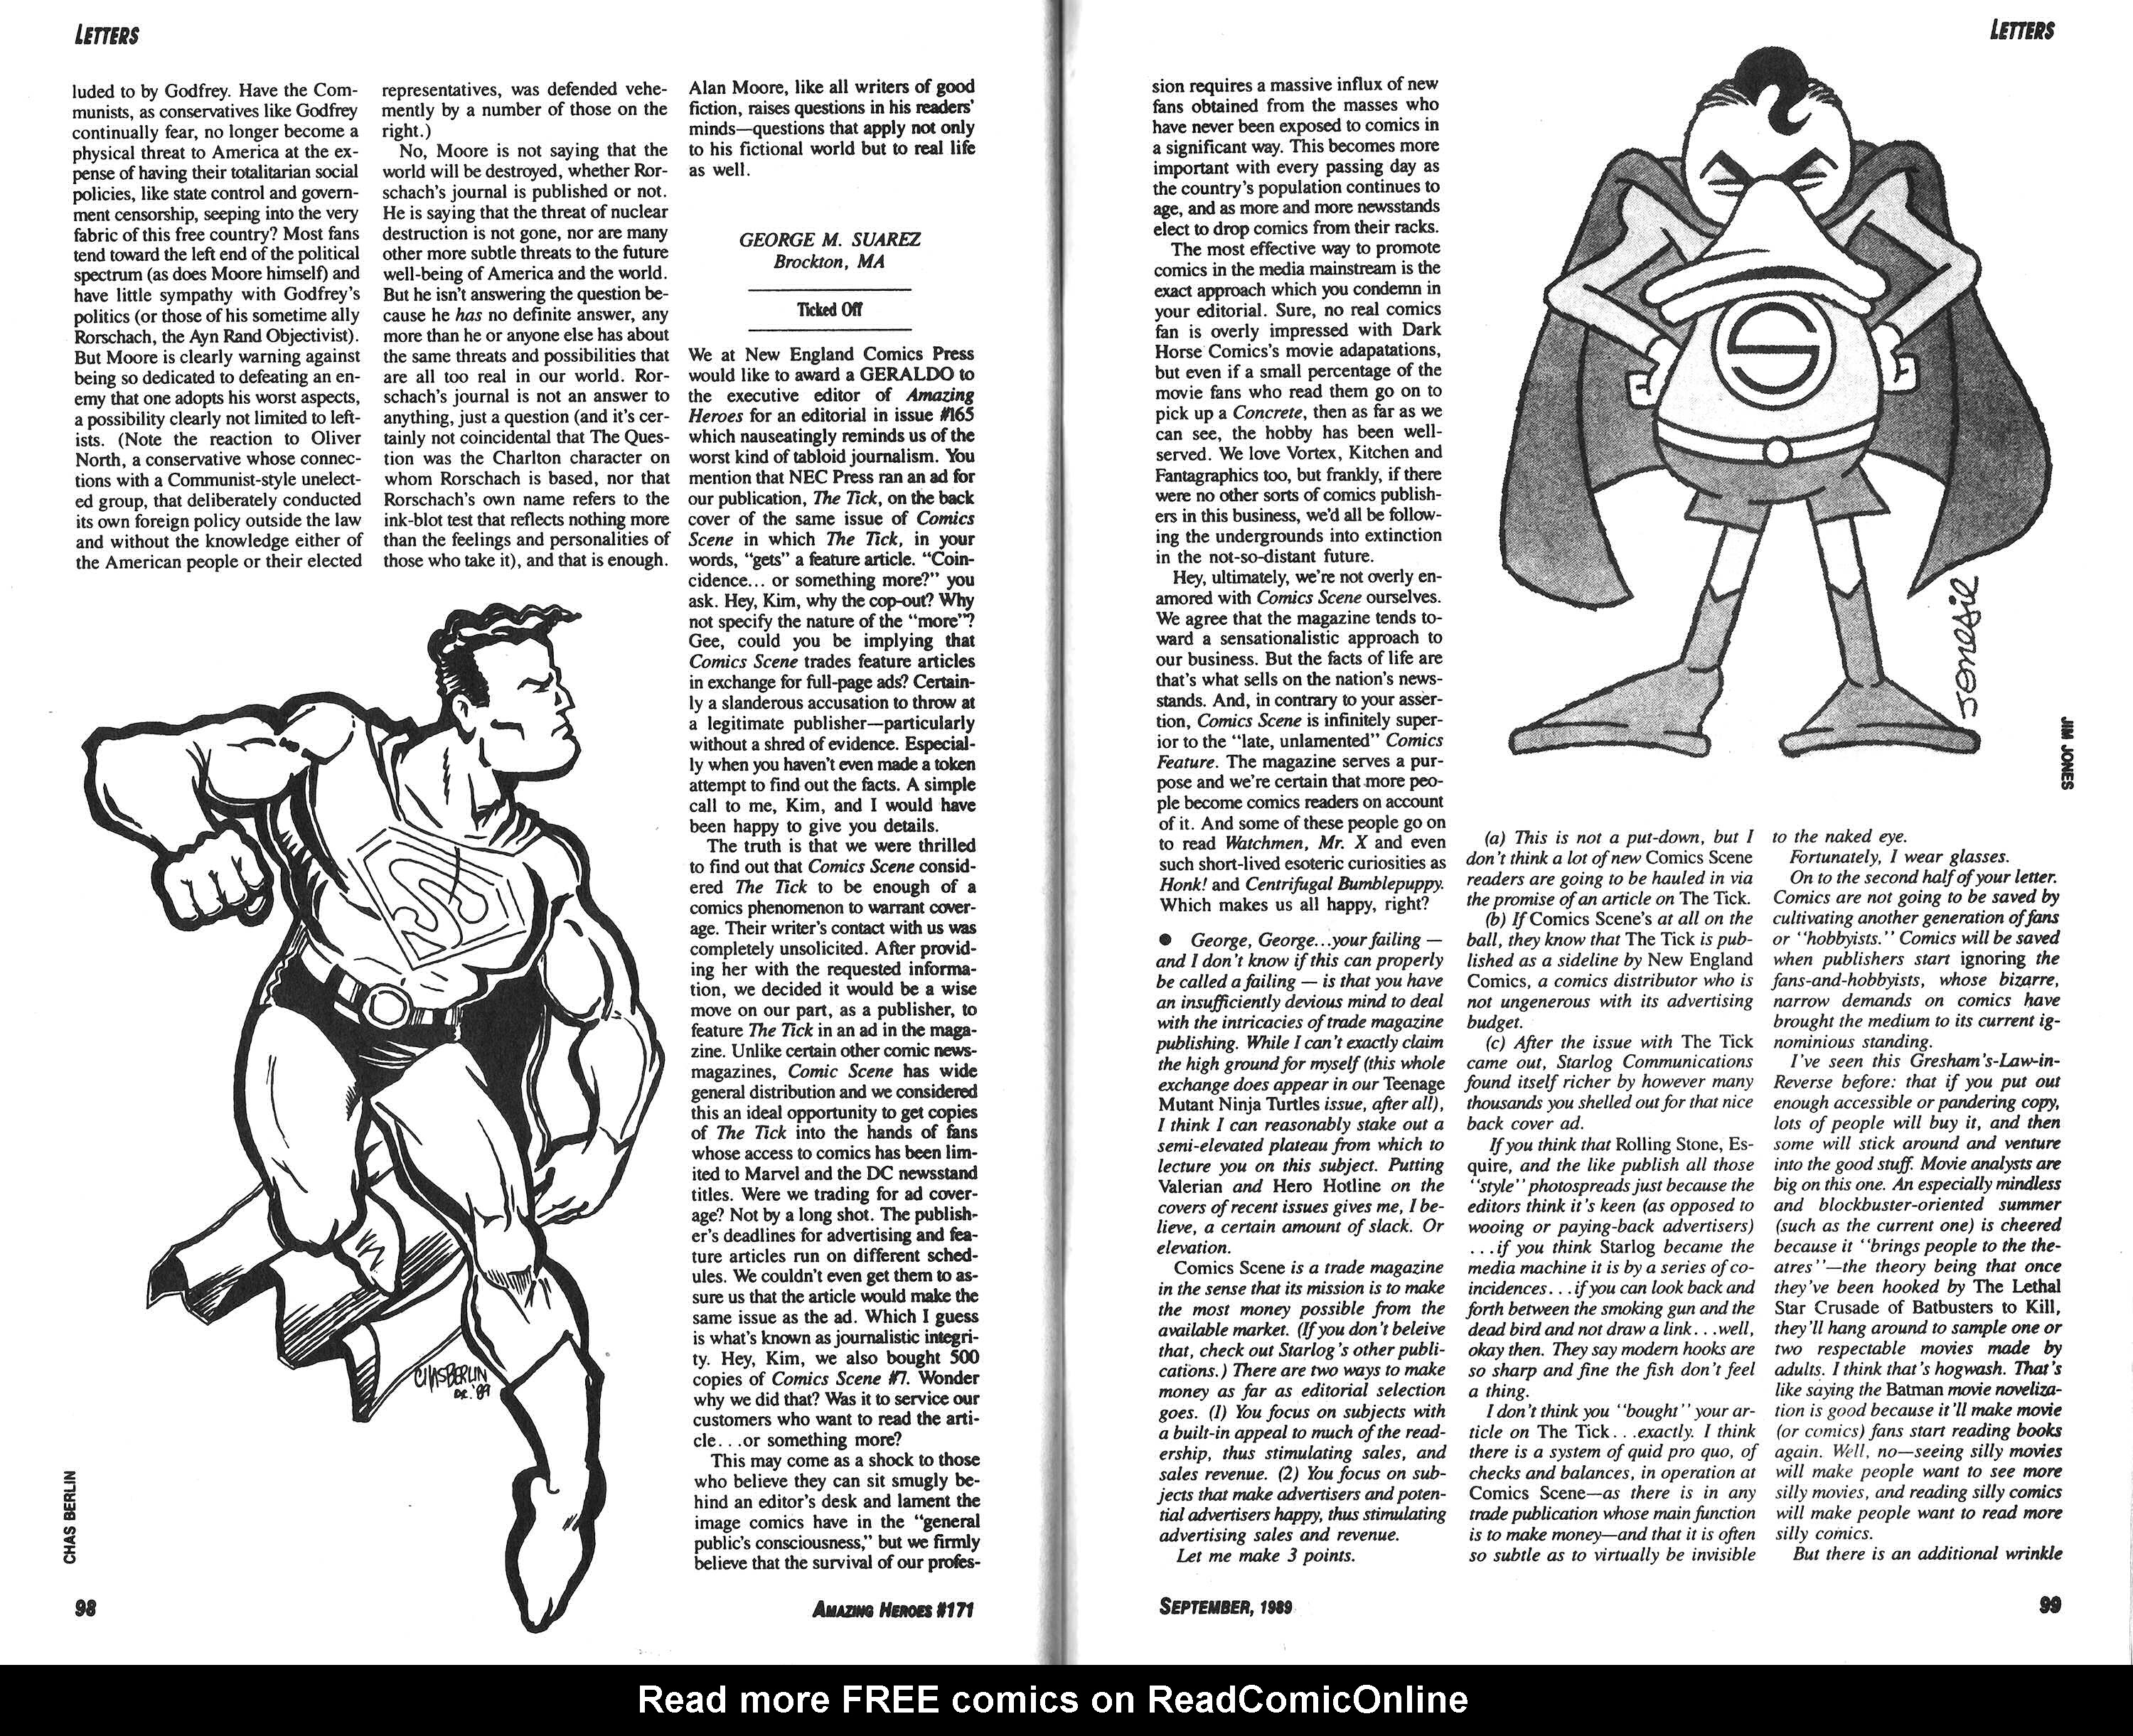 Read online Amazing Heroes comic -  Issue #171 - 50